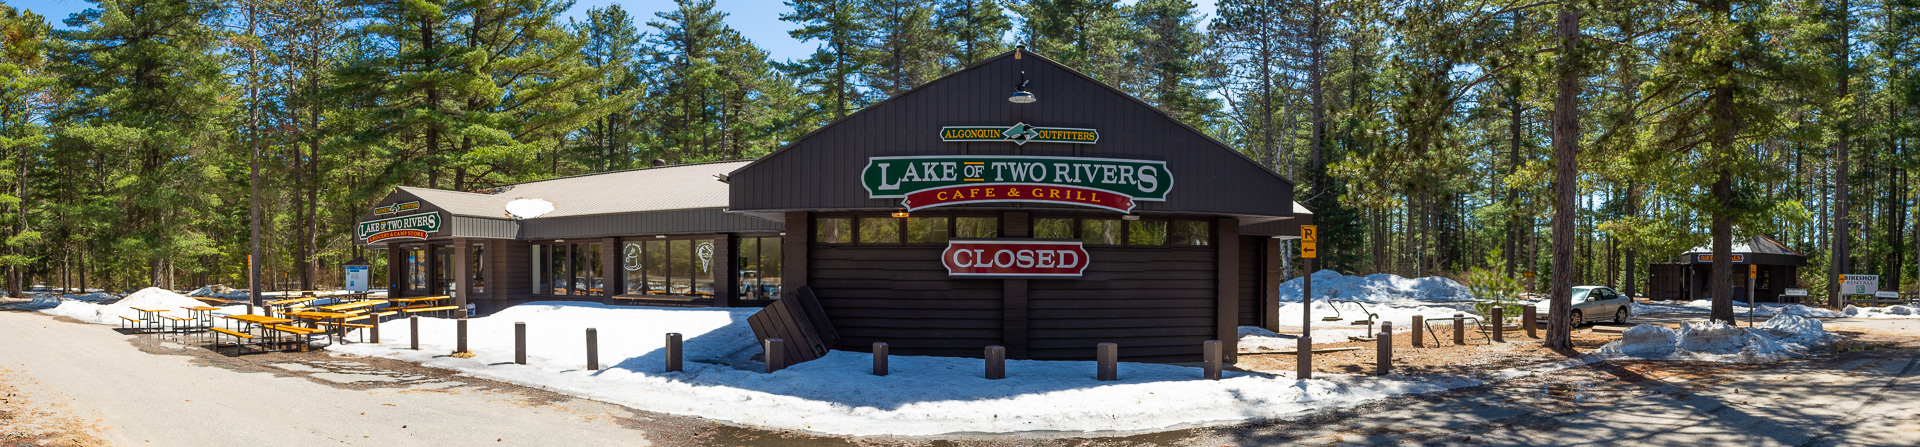 Algonquin Outfitters Lake of Two Rivers Store & Cafe, opens on Thurs May 3rd 2018